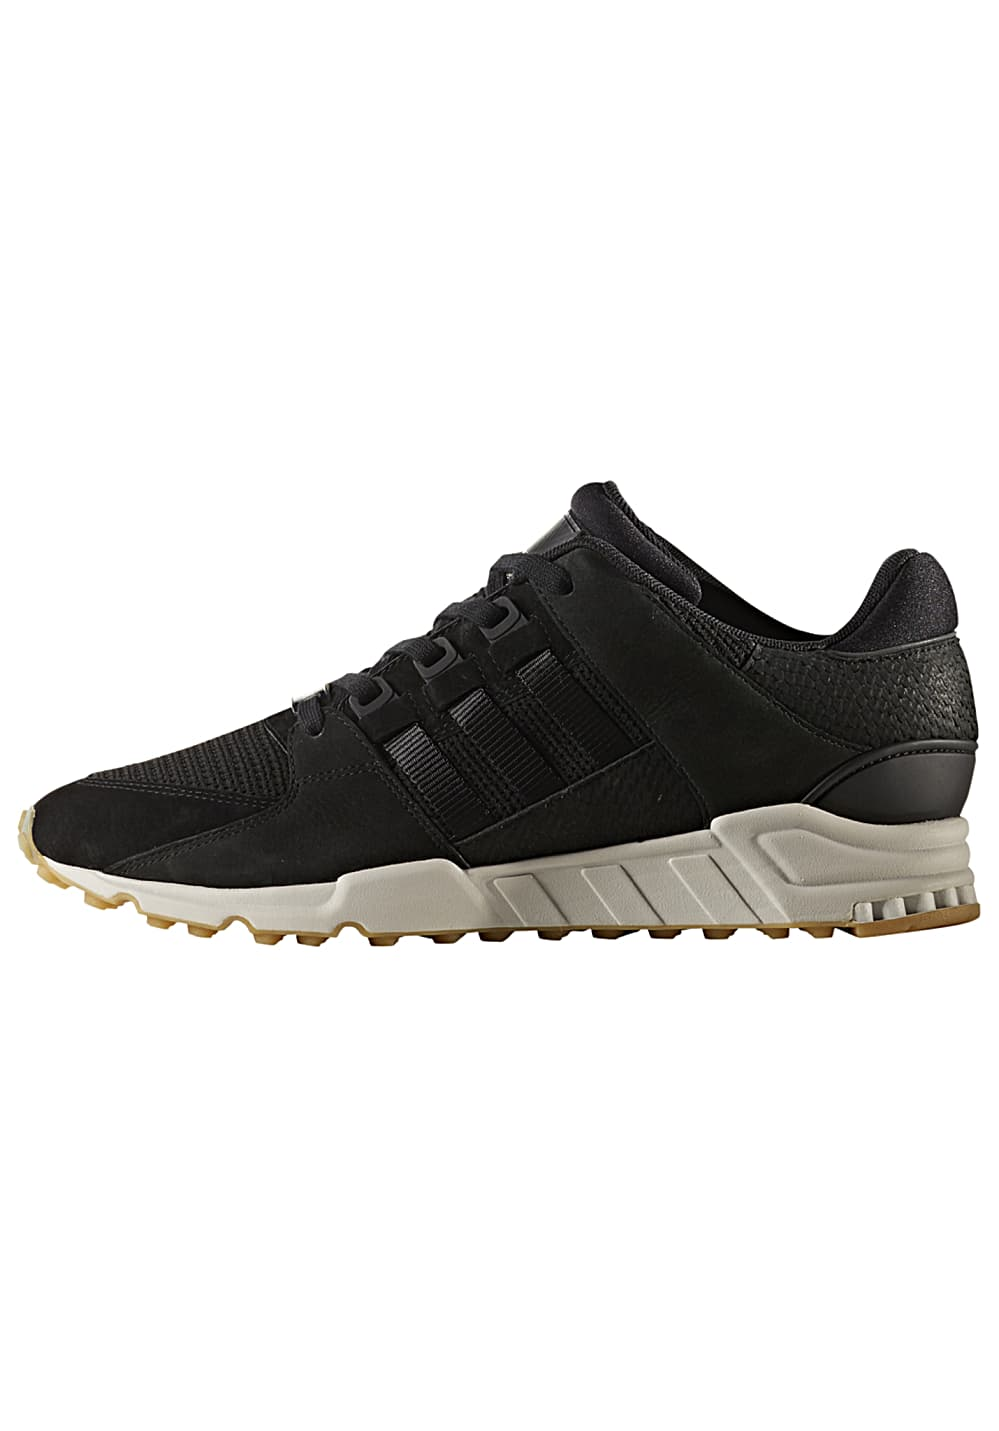 Sneaker Herren Rf Schwarz Eqt Adidas Für Originals Support 8On0XNPkw